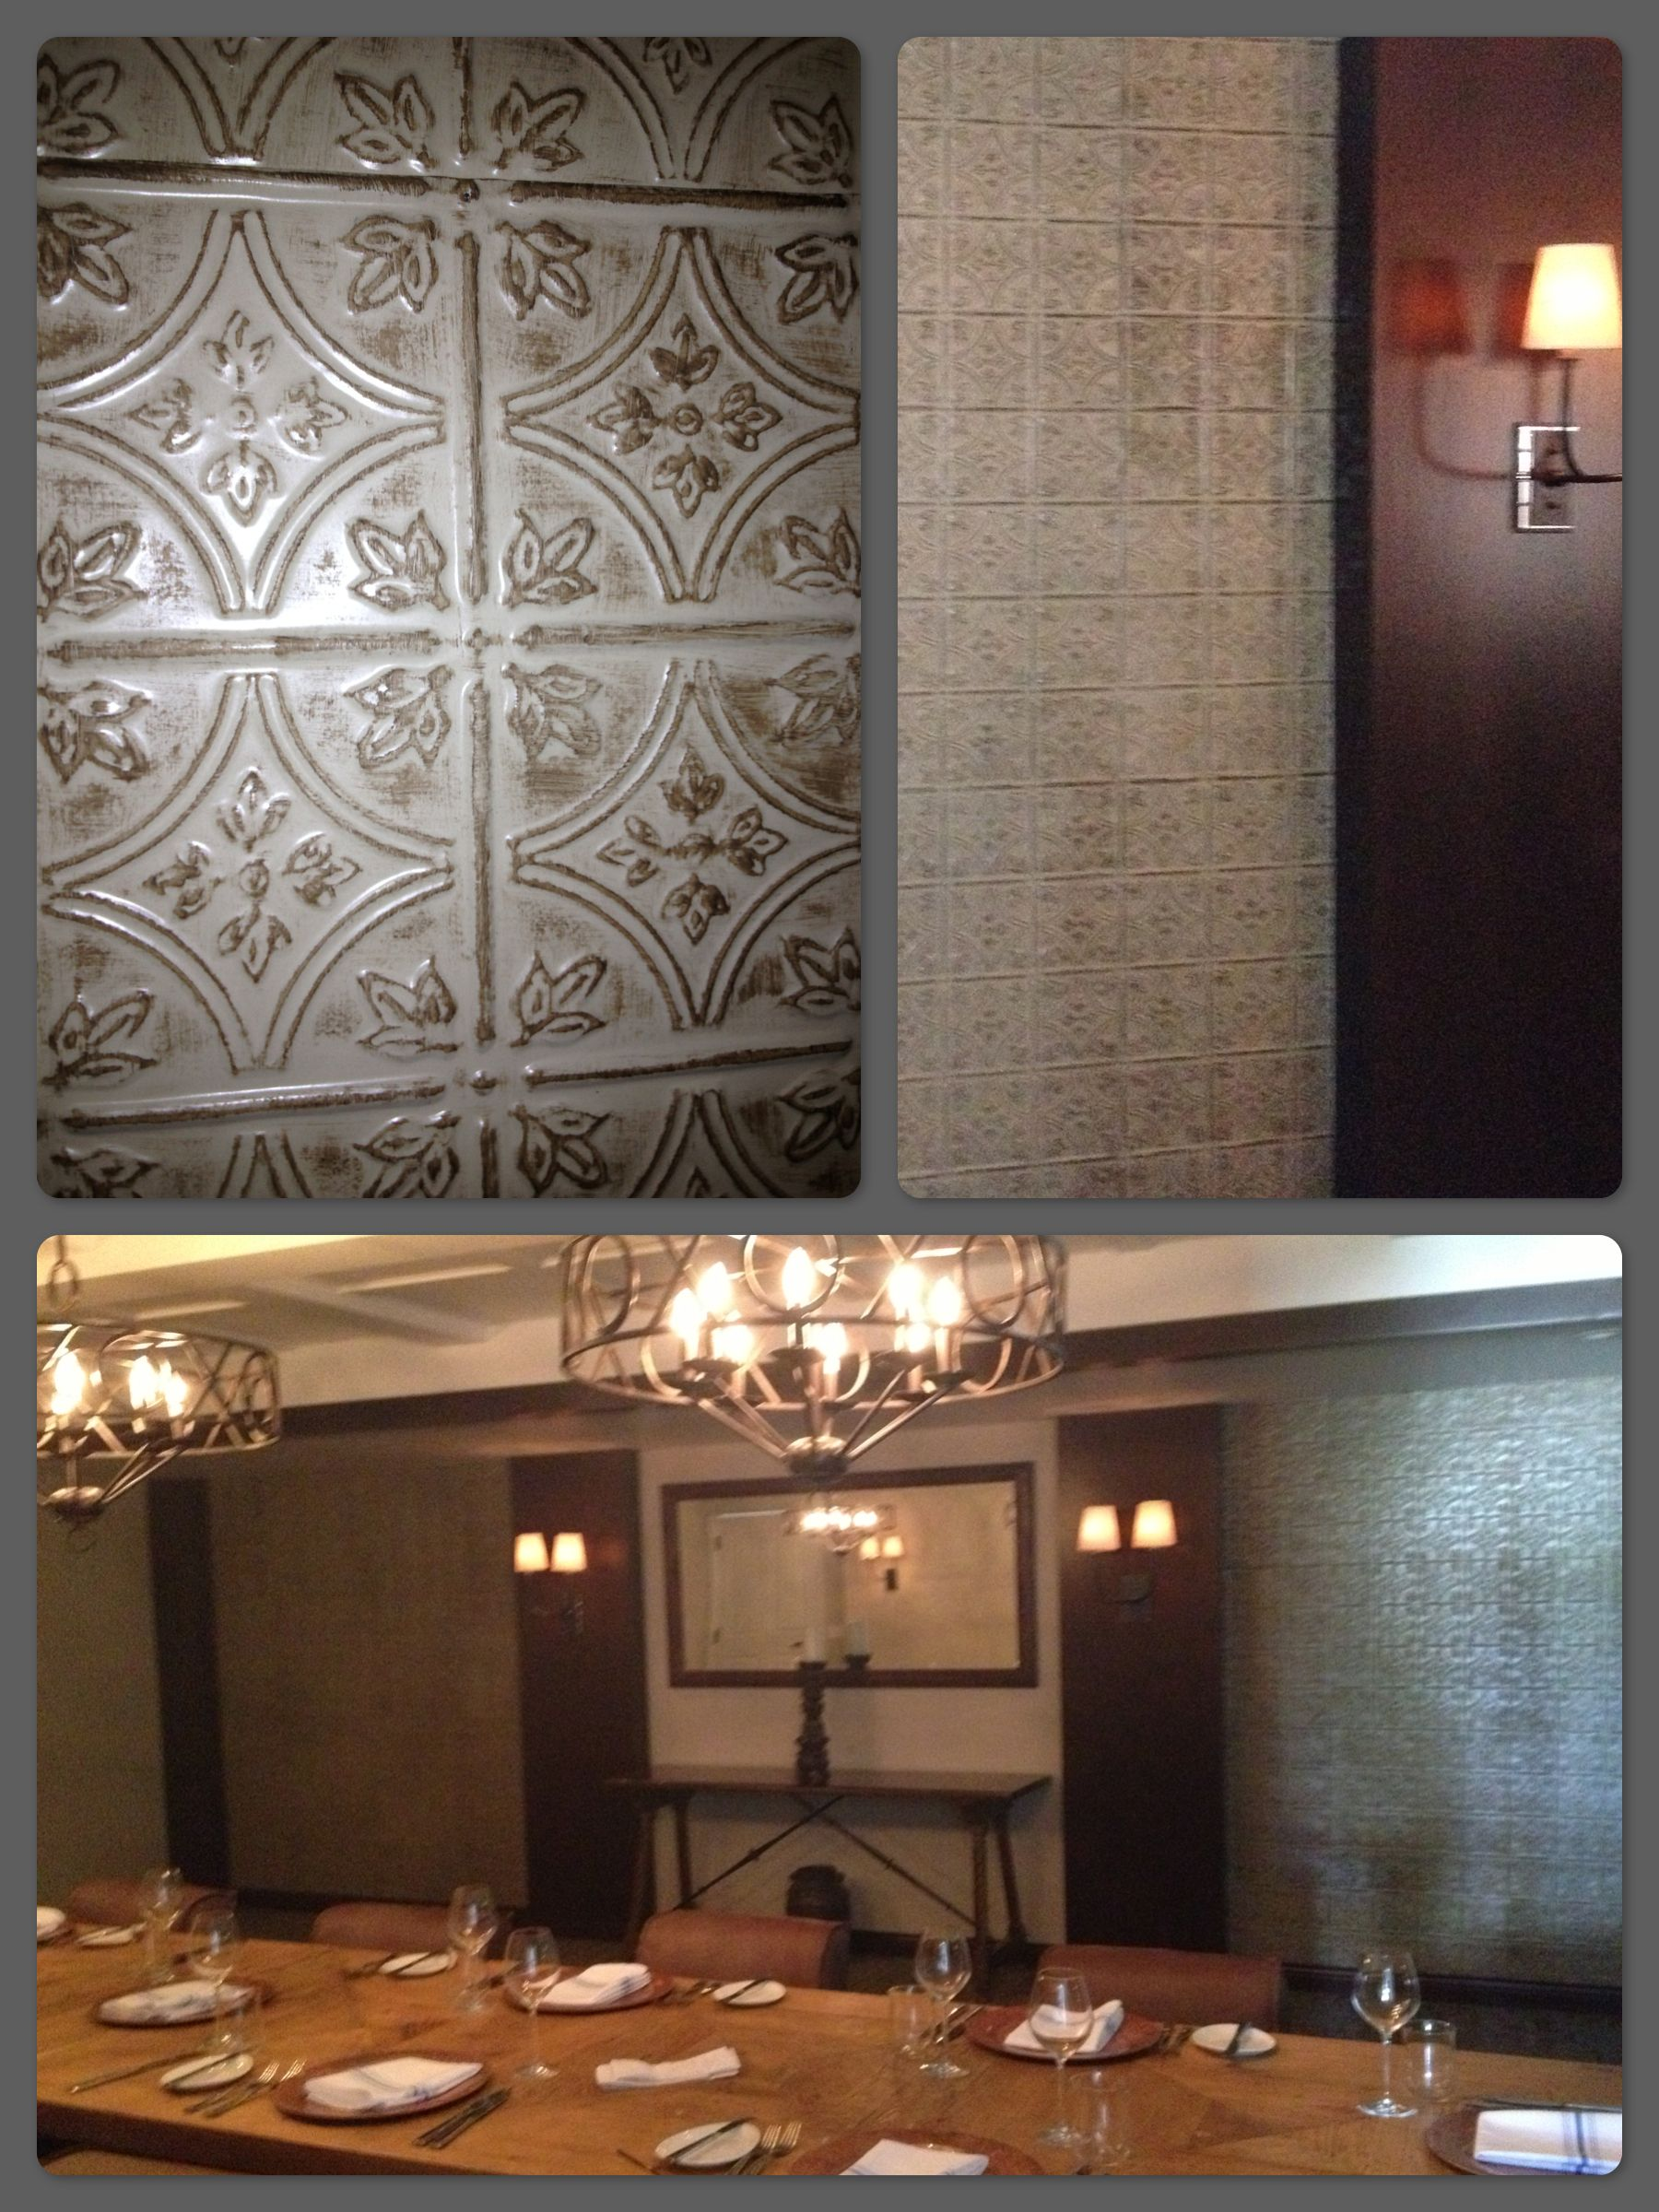 Decorative Tiles For Wall The Inn At Rancho Santa Fe Faux Tin Decorative Tile Walls  For